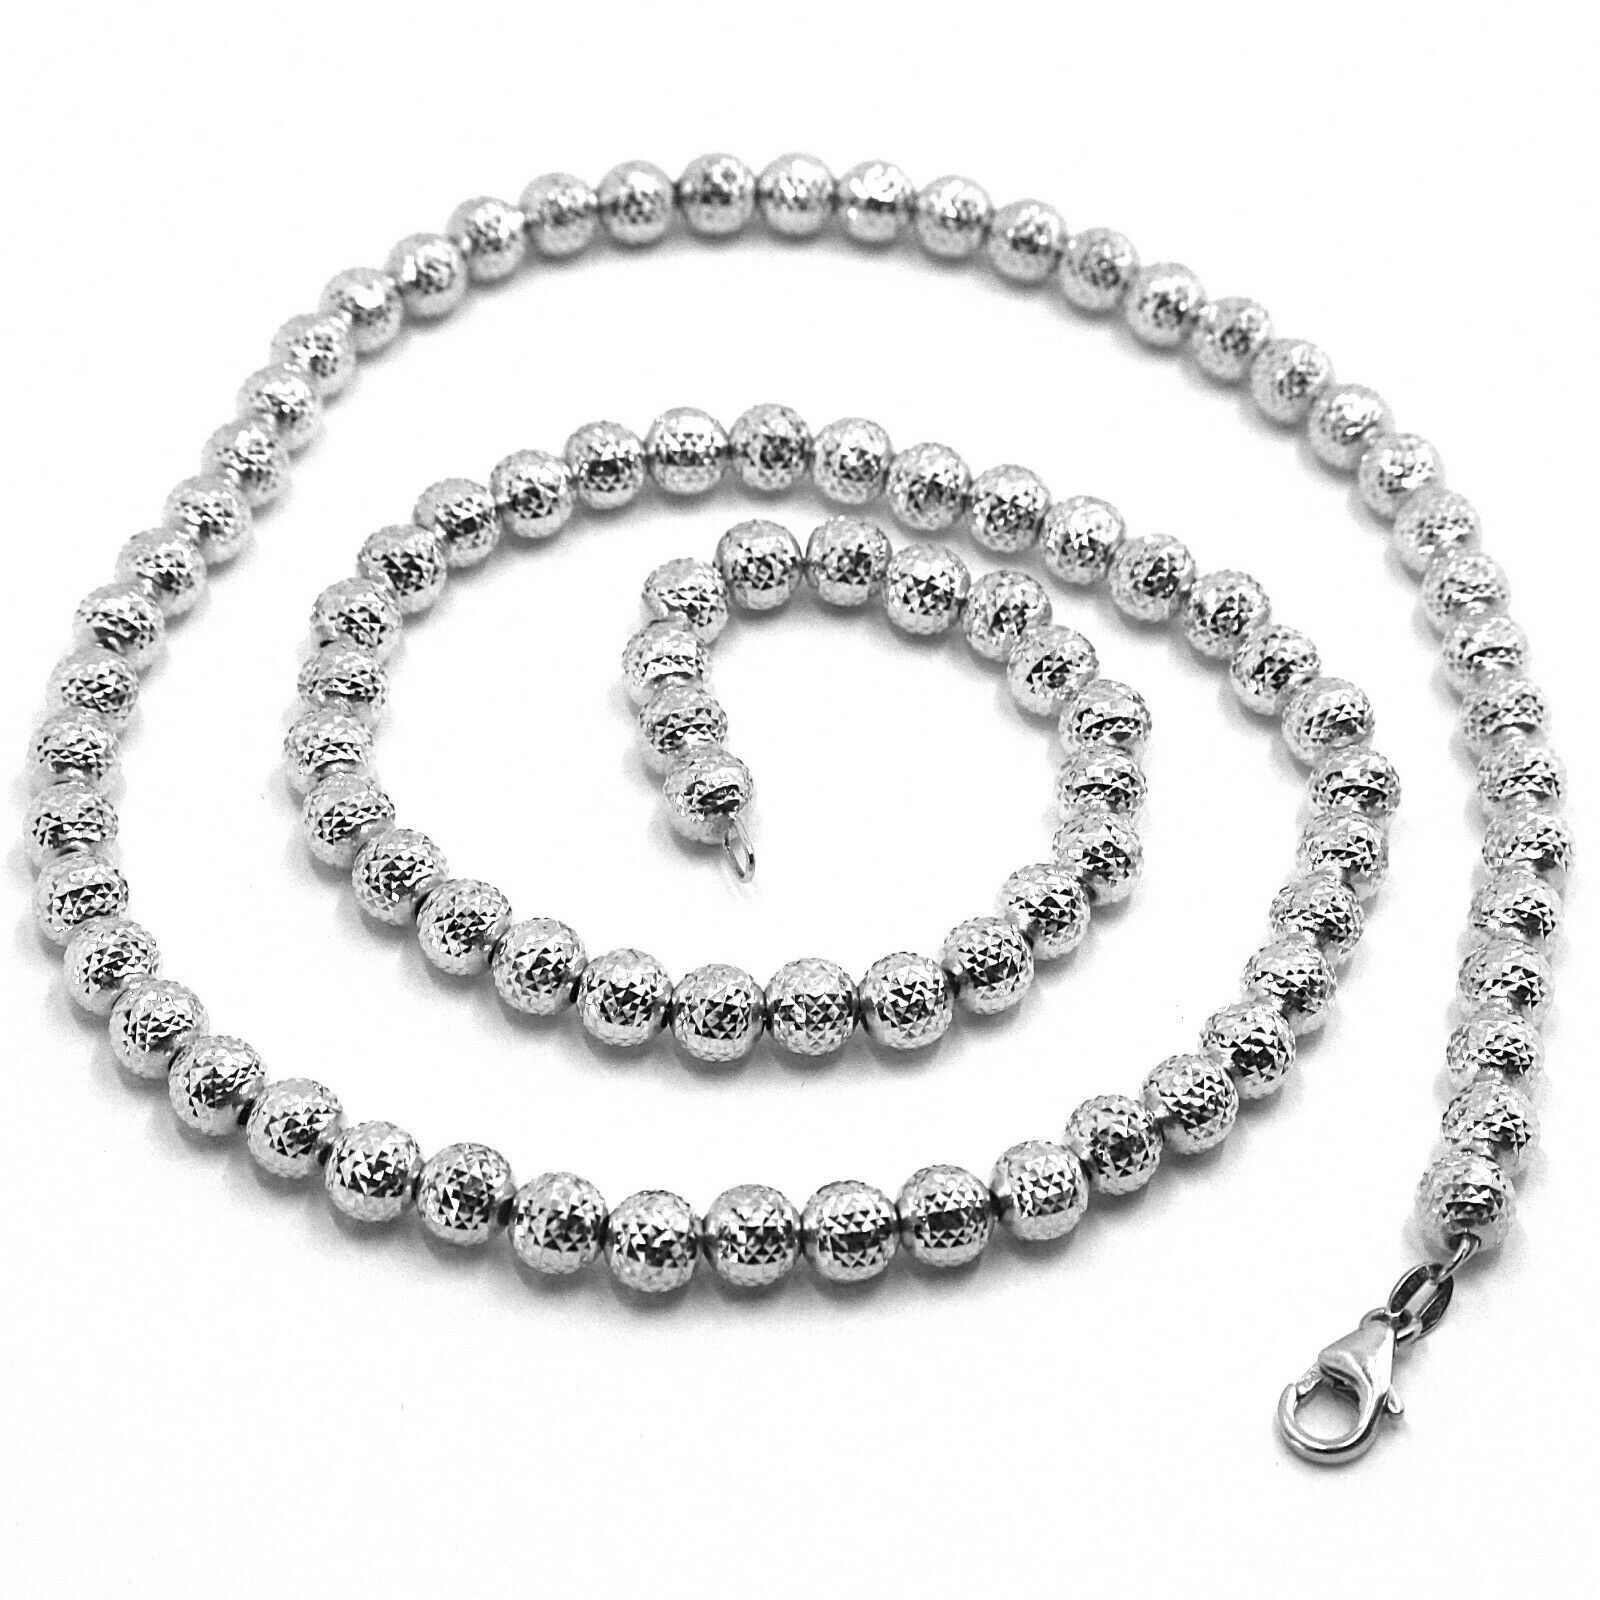 "18K WHITE GOLD CHAIN FINELY WORKED SPHERES 5 MM DIAMOND CUT, FACETED 20"", 50 CM"